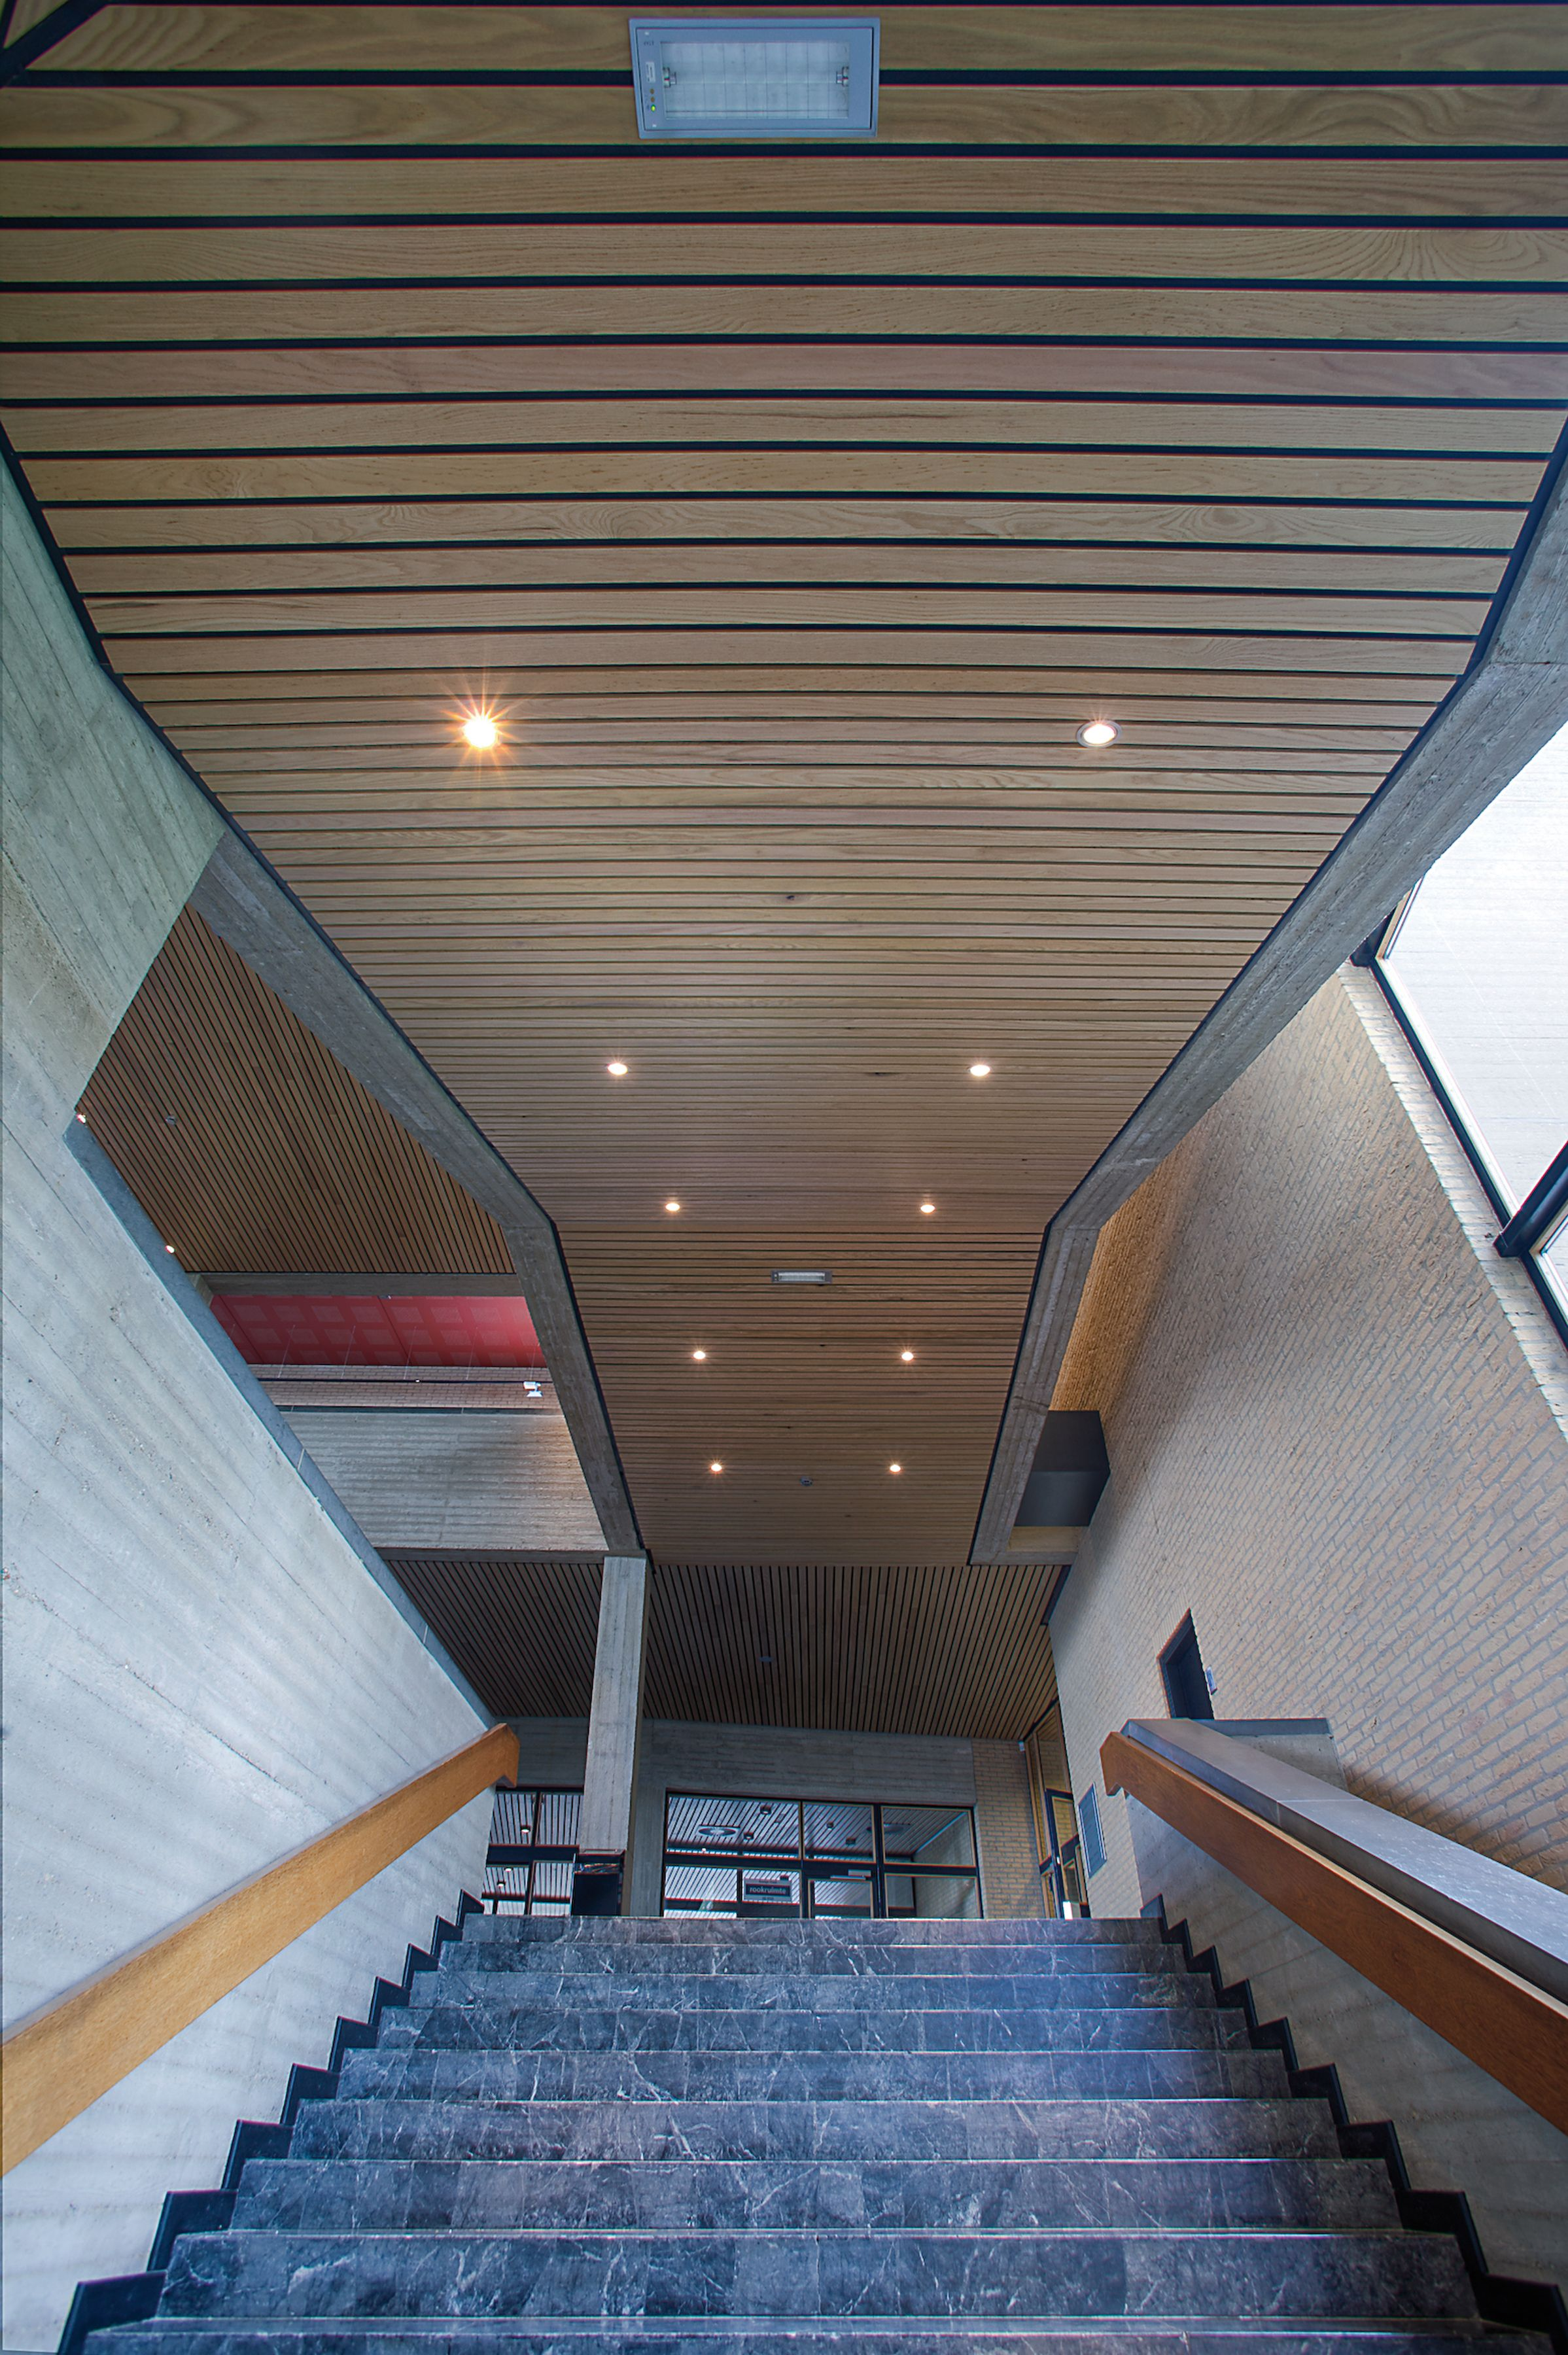 Linear Ceiling Installed At Erasmus Universiteit In Rotterdam, Netherlands And